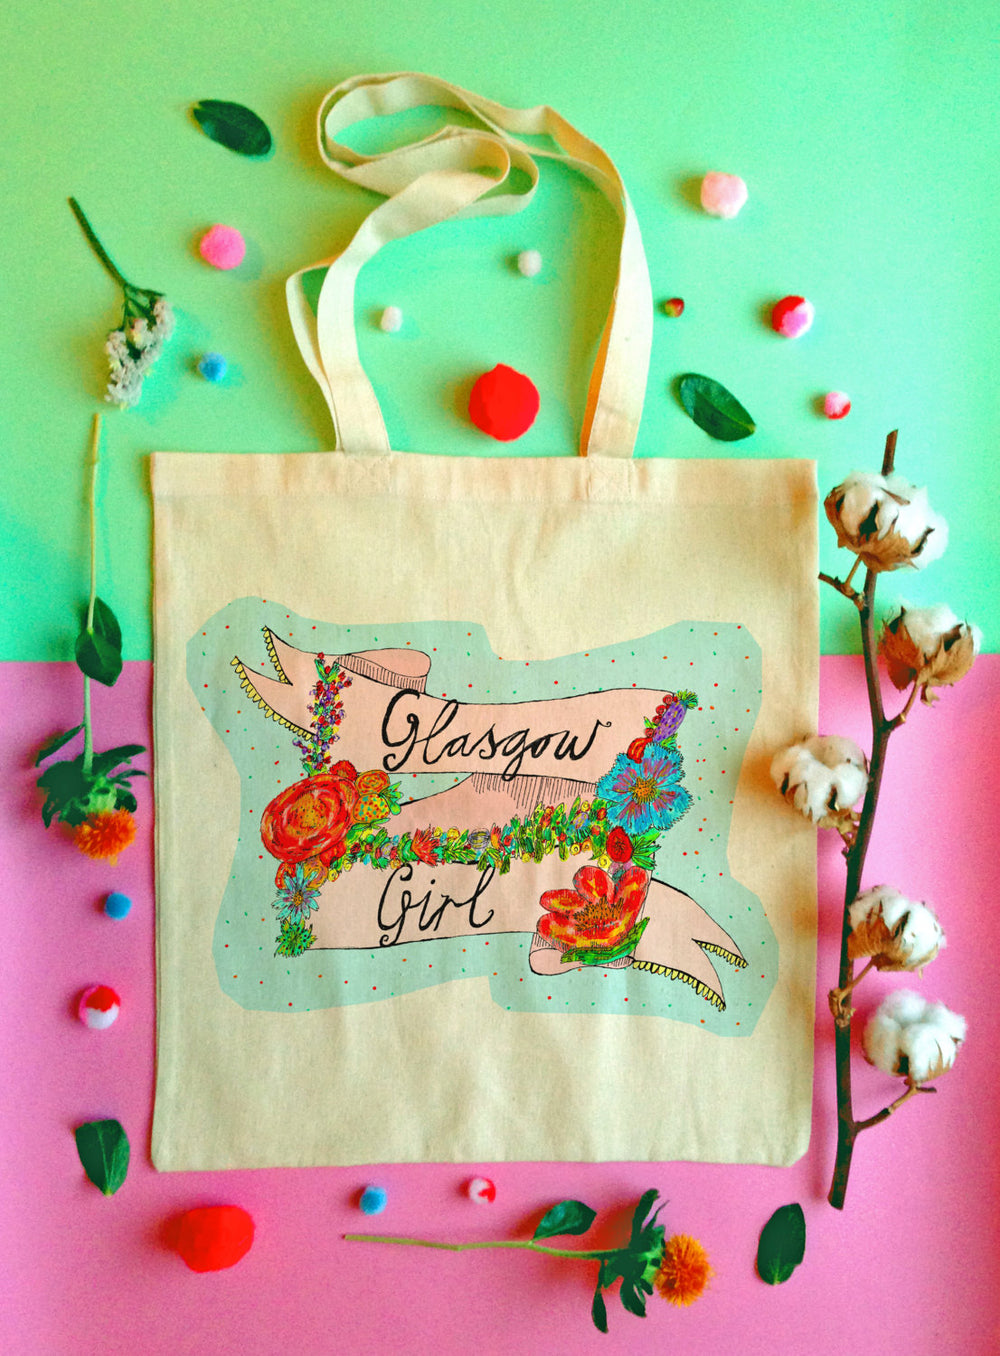 GLASGOW GIRL Tote Bag